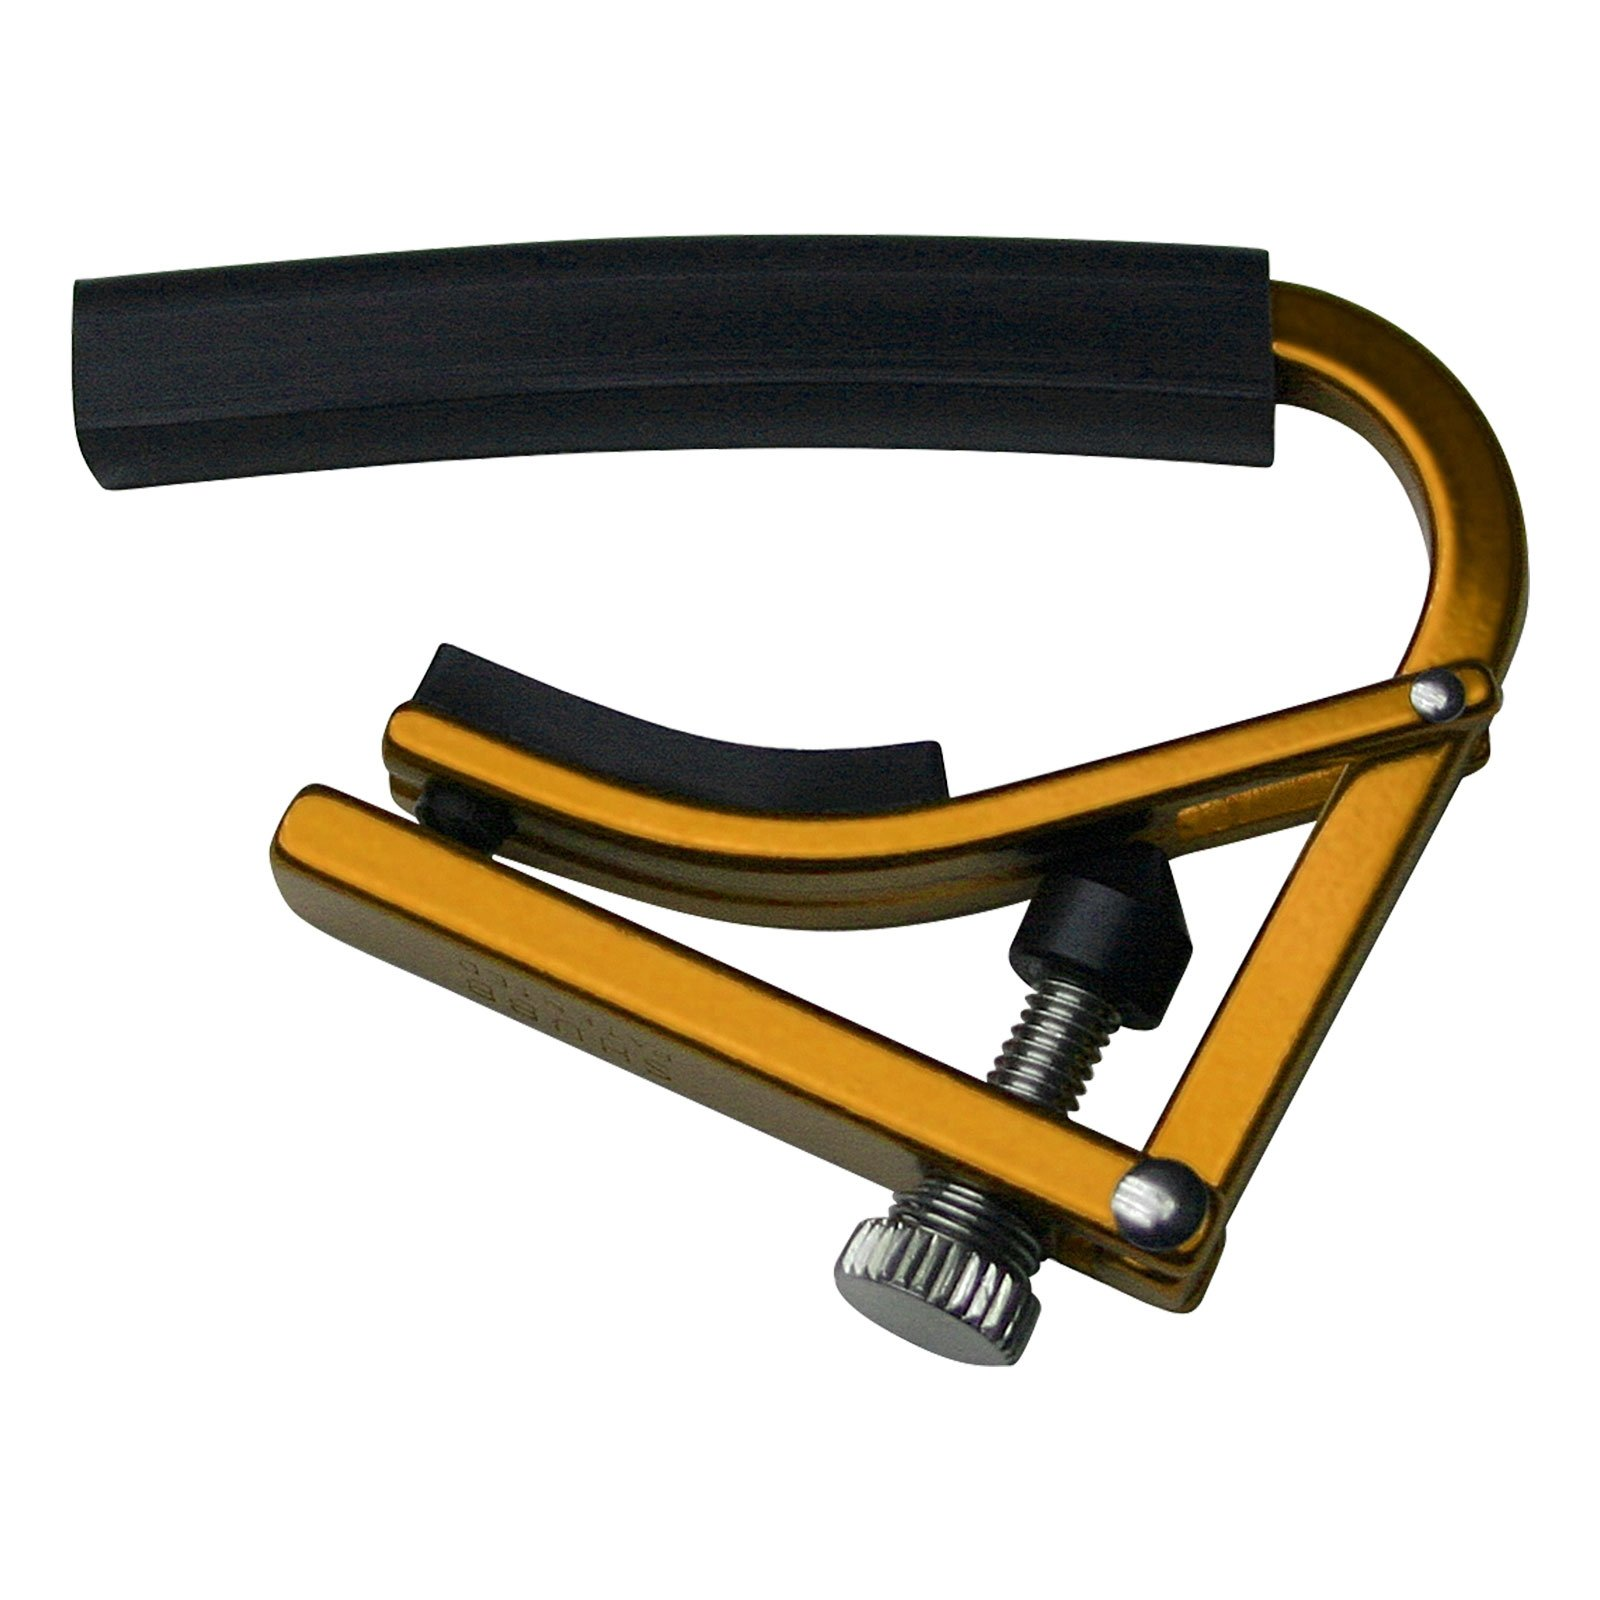 Shubb Lite Series GC-20TLGD (L3GLD) 12 String Guitar Capo - Anodized Gold